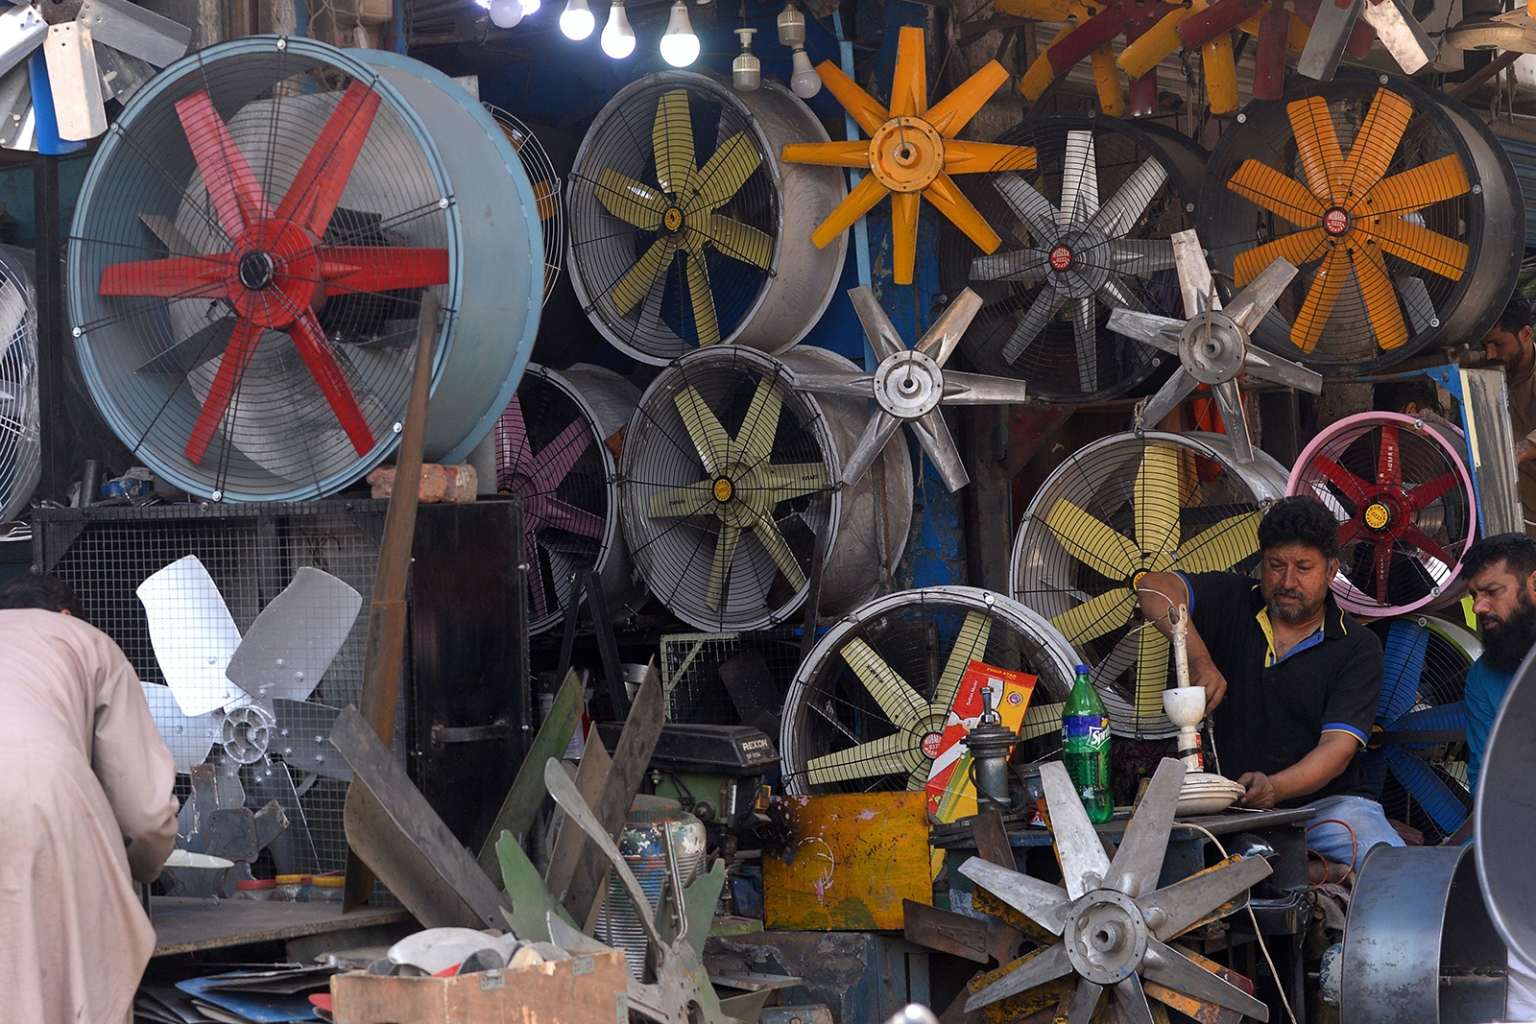 A Pakistani man repairs a fan at his workshop in Lahore on April 9. ARIF ALI/AFP/Getty Images